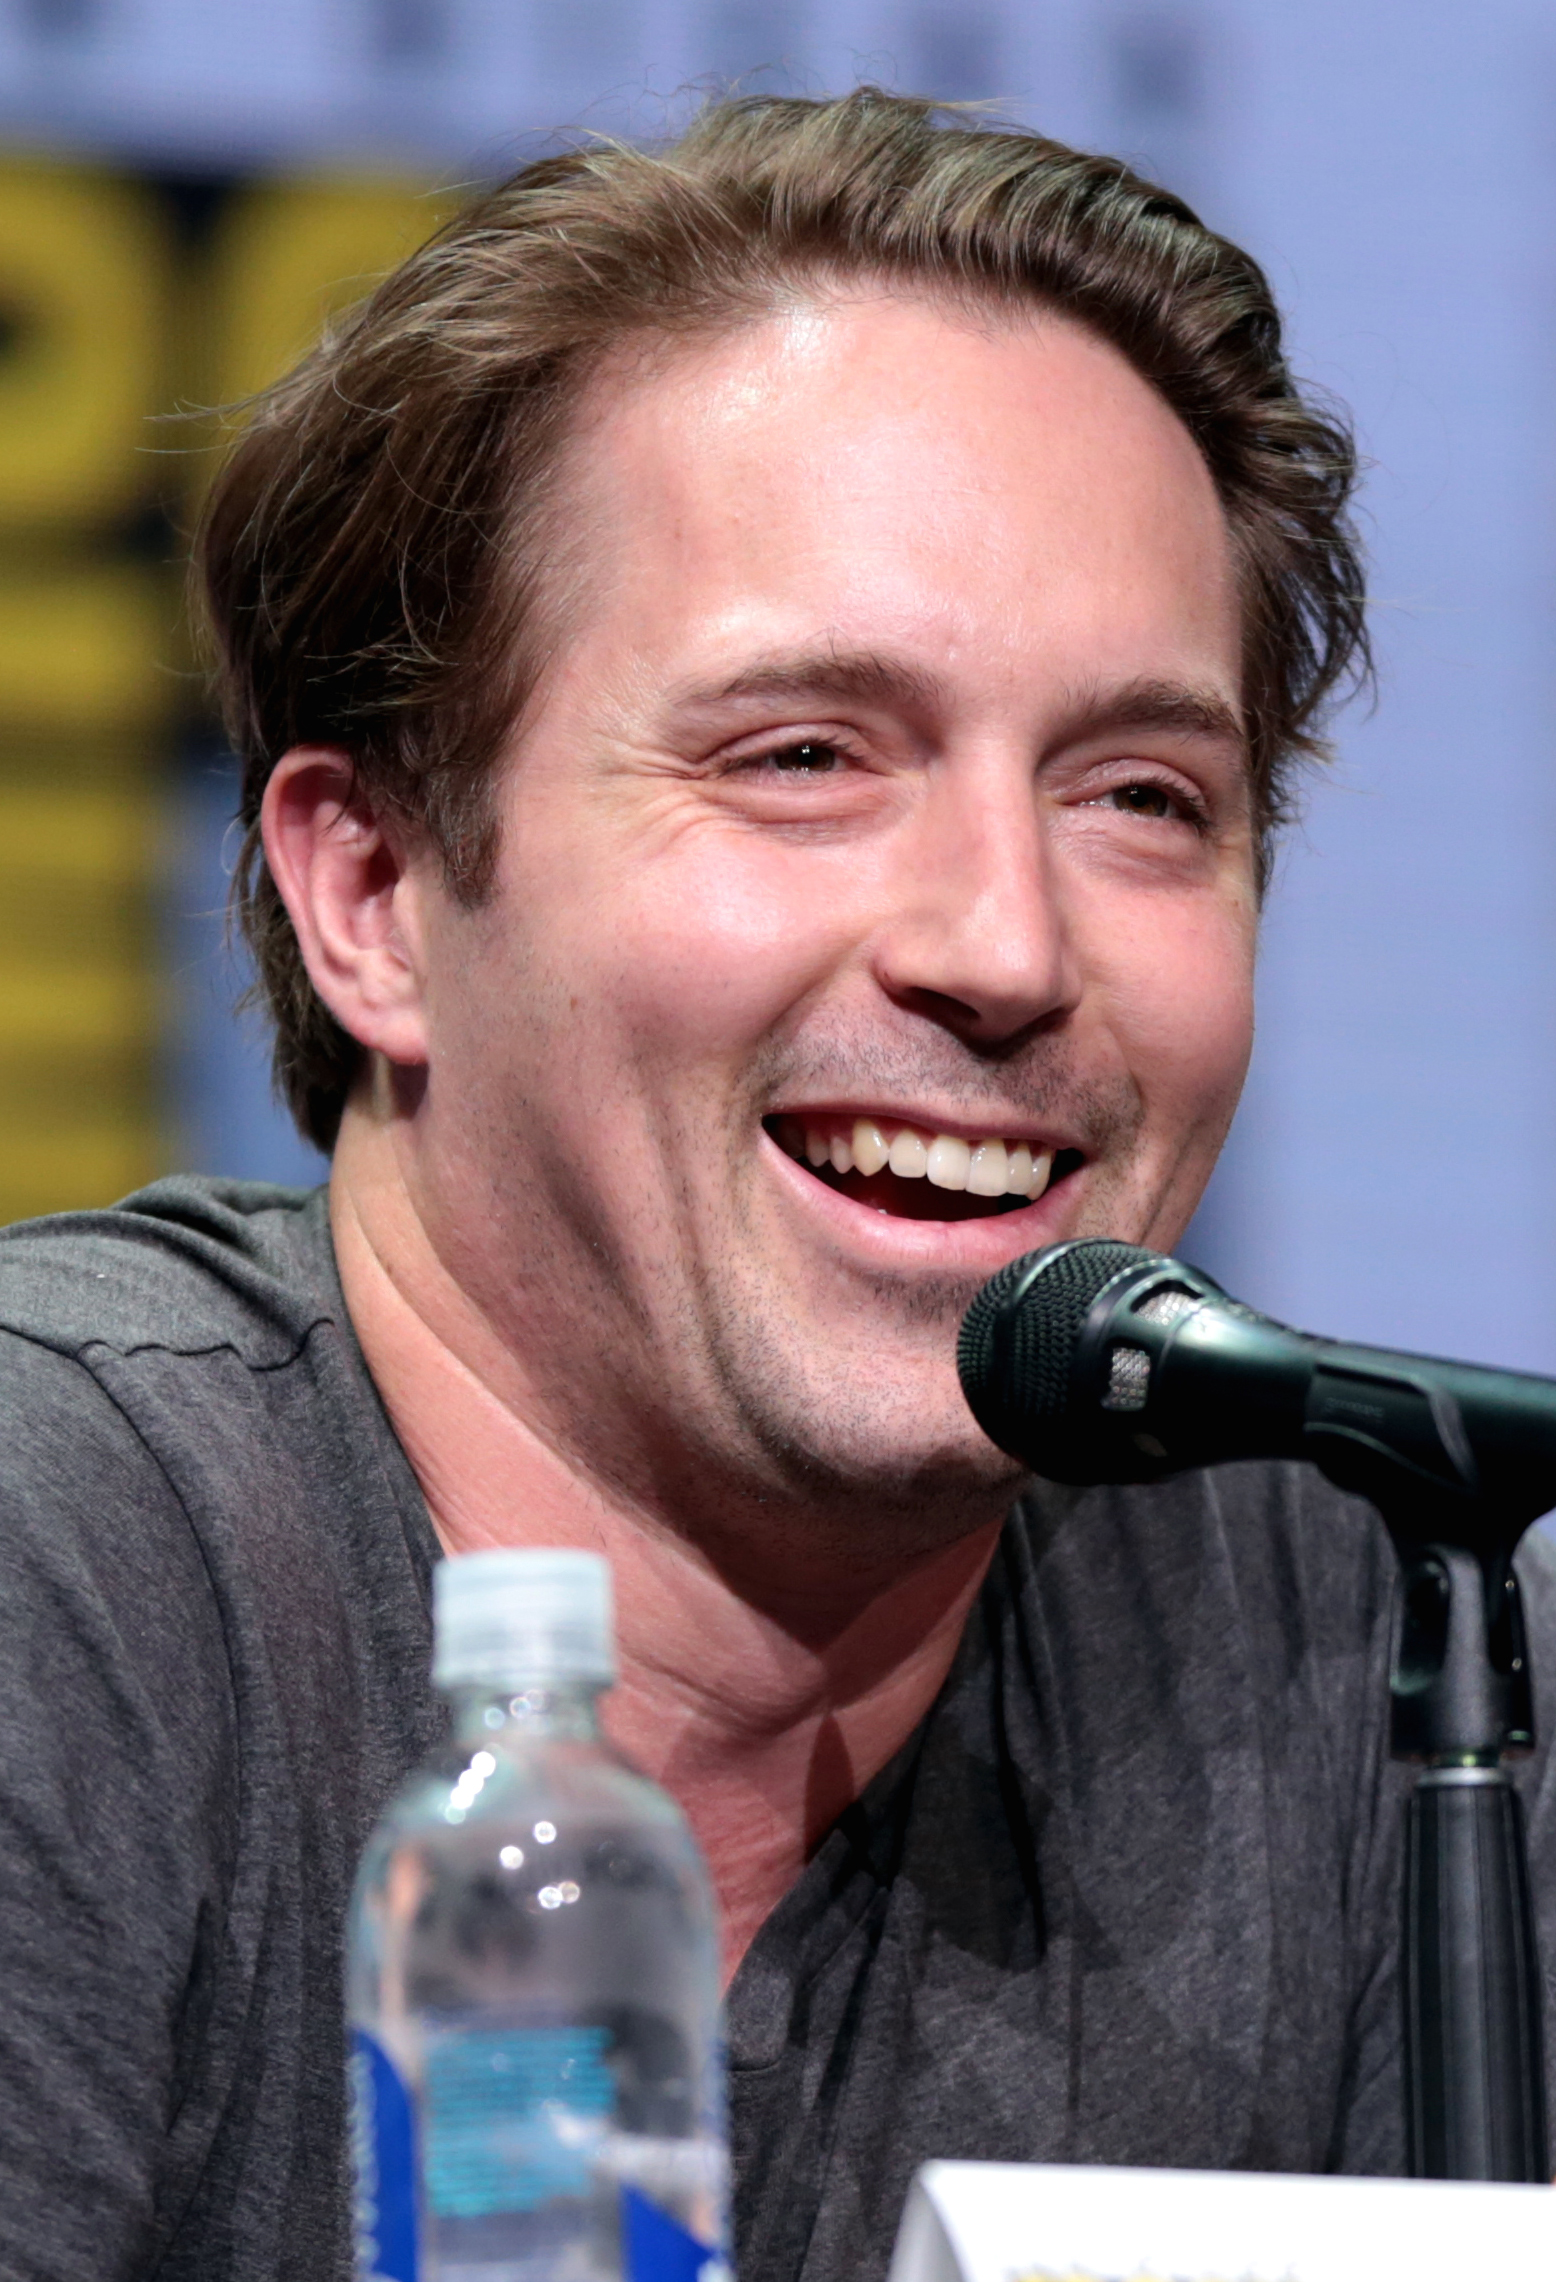 The 34-year old son of father  Andy Bennett and mother Sarah Bennett Beck Bennett in 2018 photo. Beck Bennett earned a  million dollar salary - leaving the net worth at 1 million in 2018